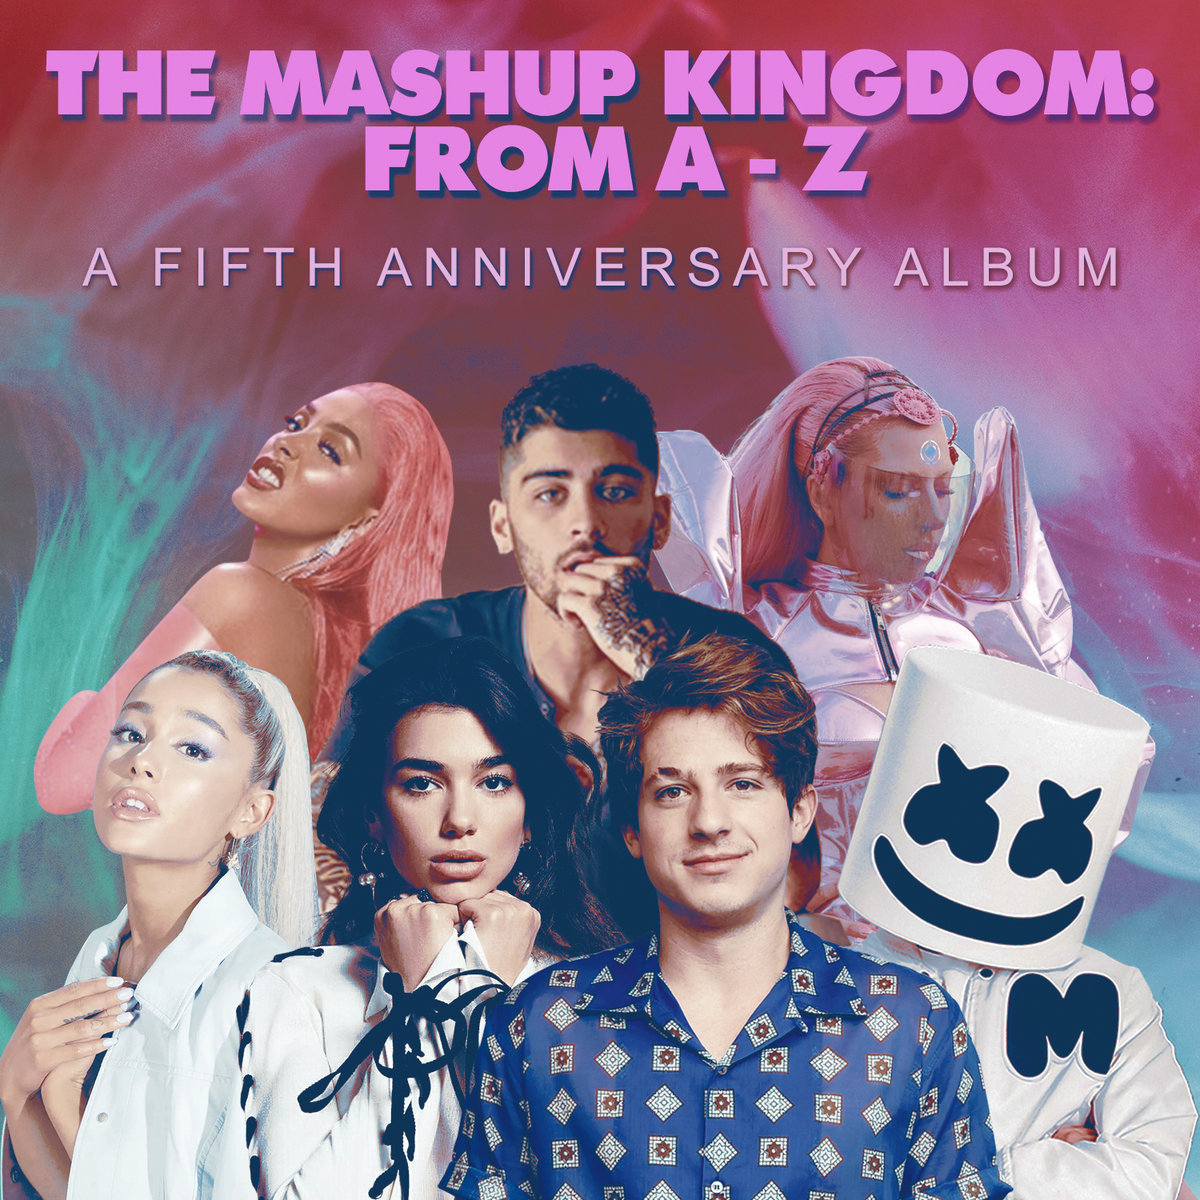 Hpl Royally Adore You Harry Styles X Lorde The Mashup Kingdom Mixmstrstel